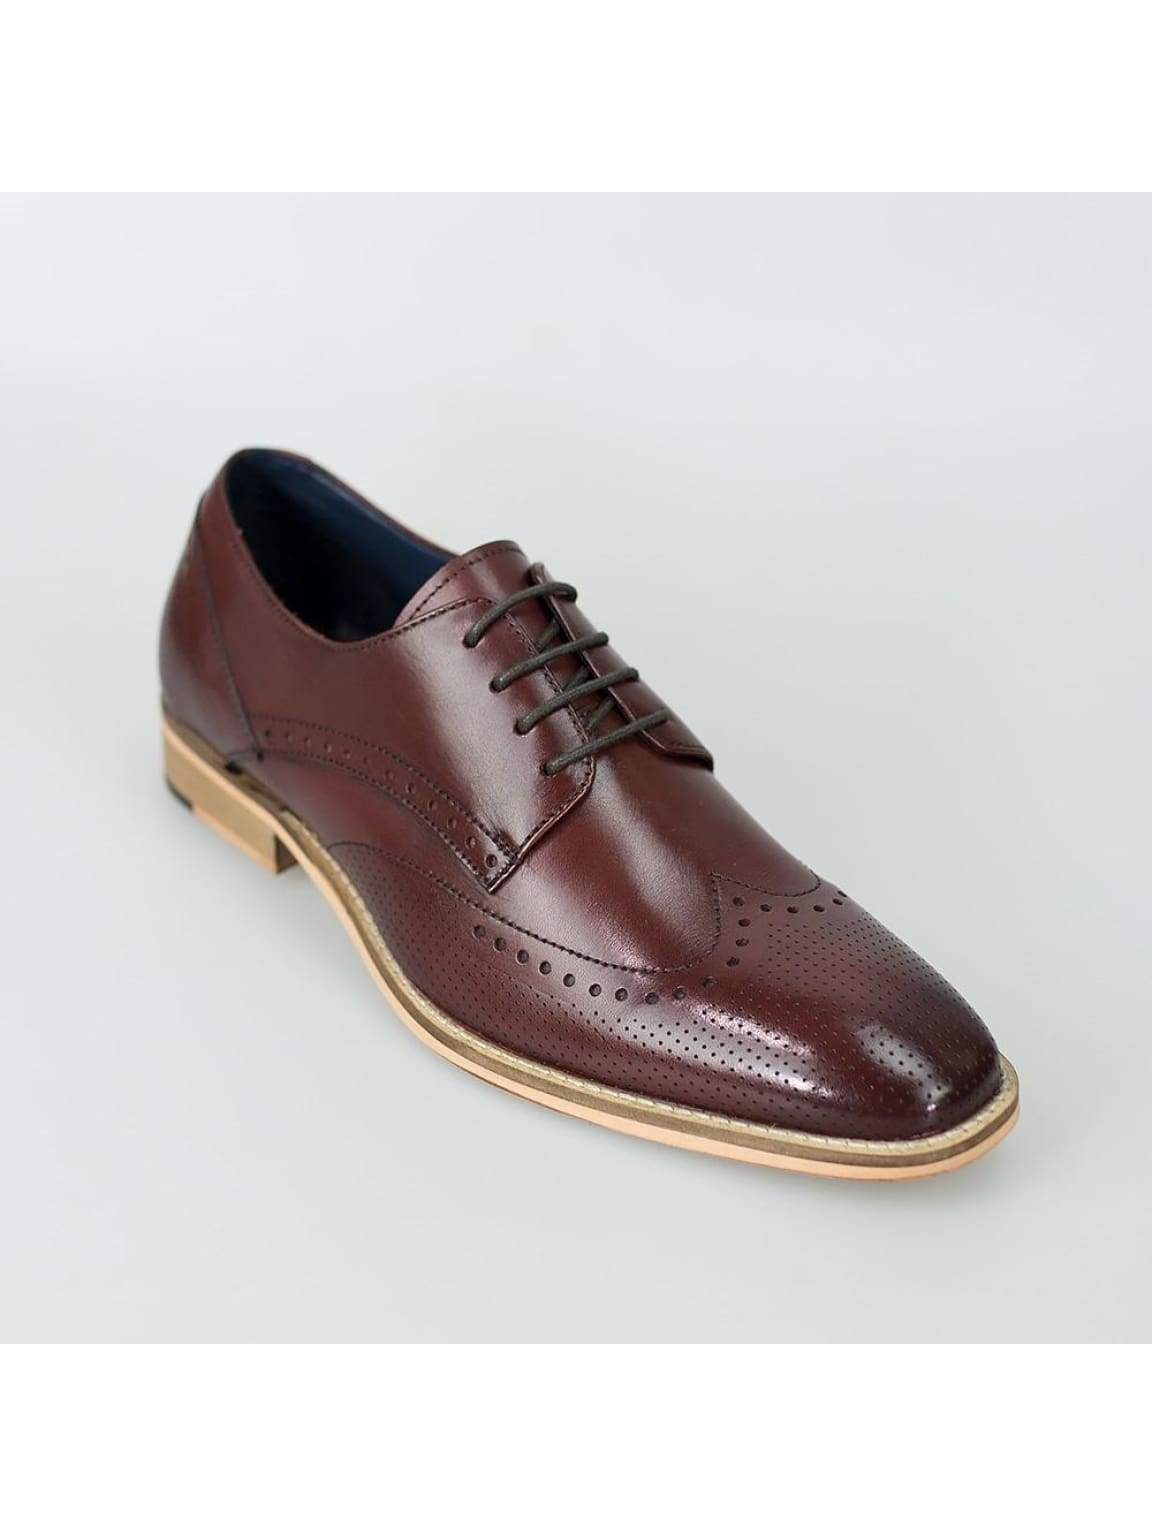 Cavani Rome Mens Leather Cherry Shoes - UK7 | EU41 - Shoes